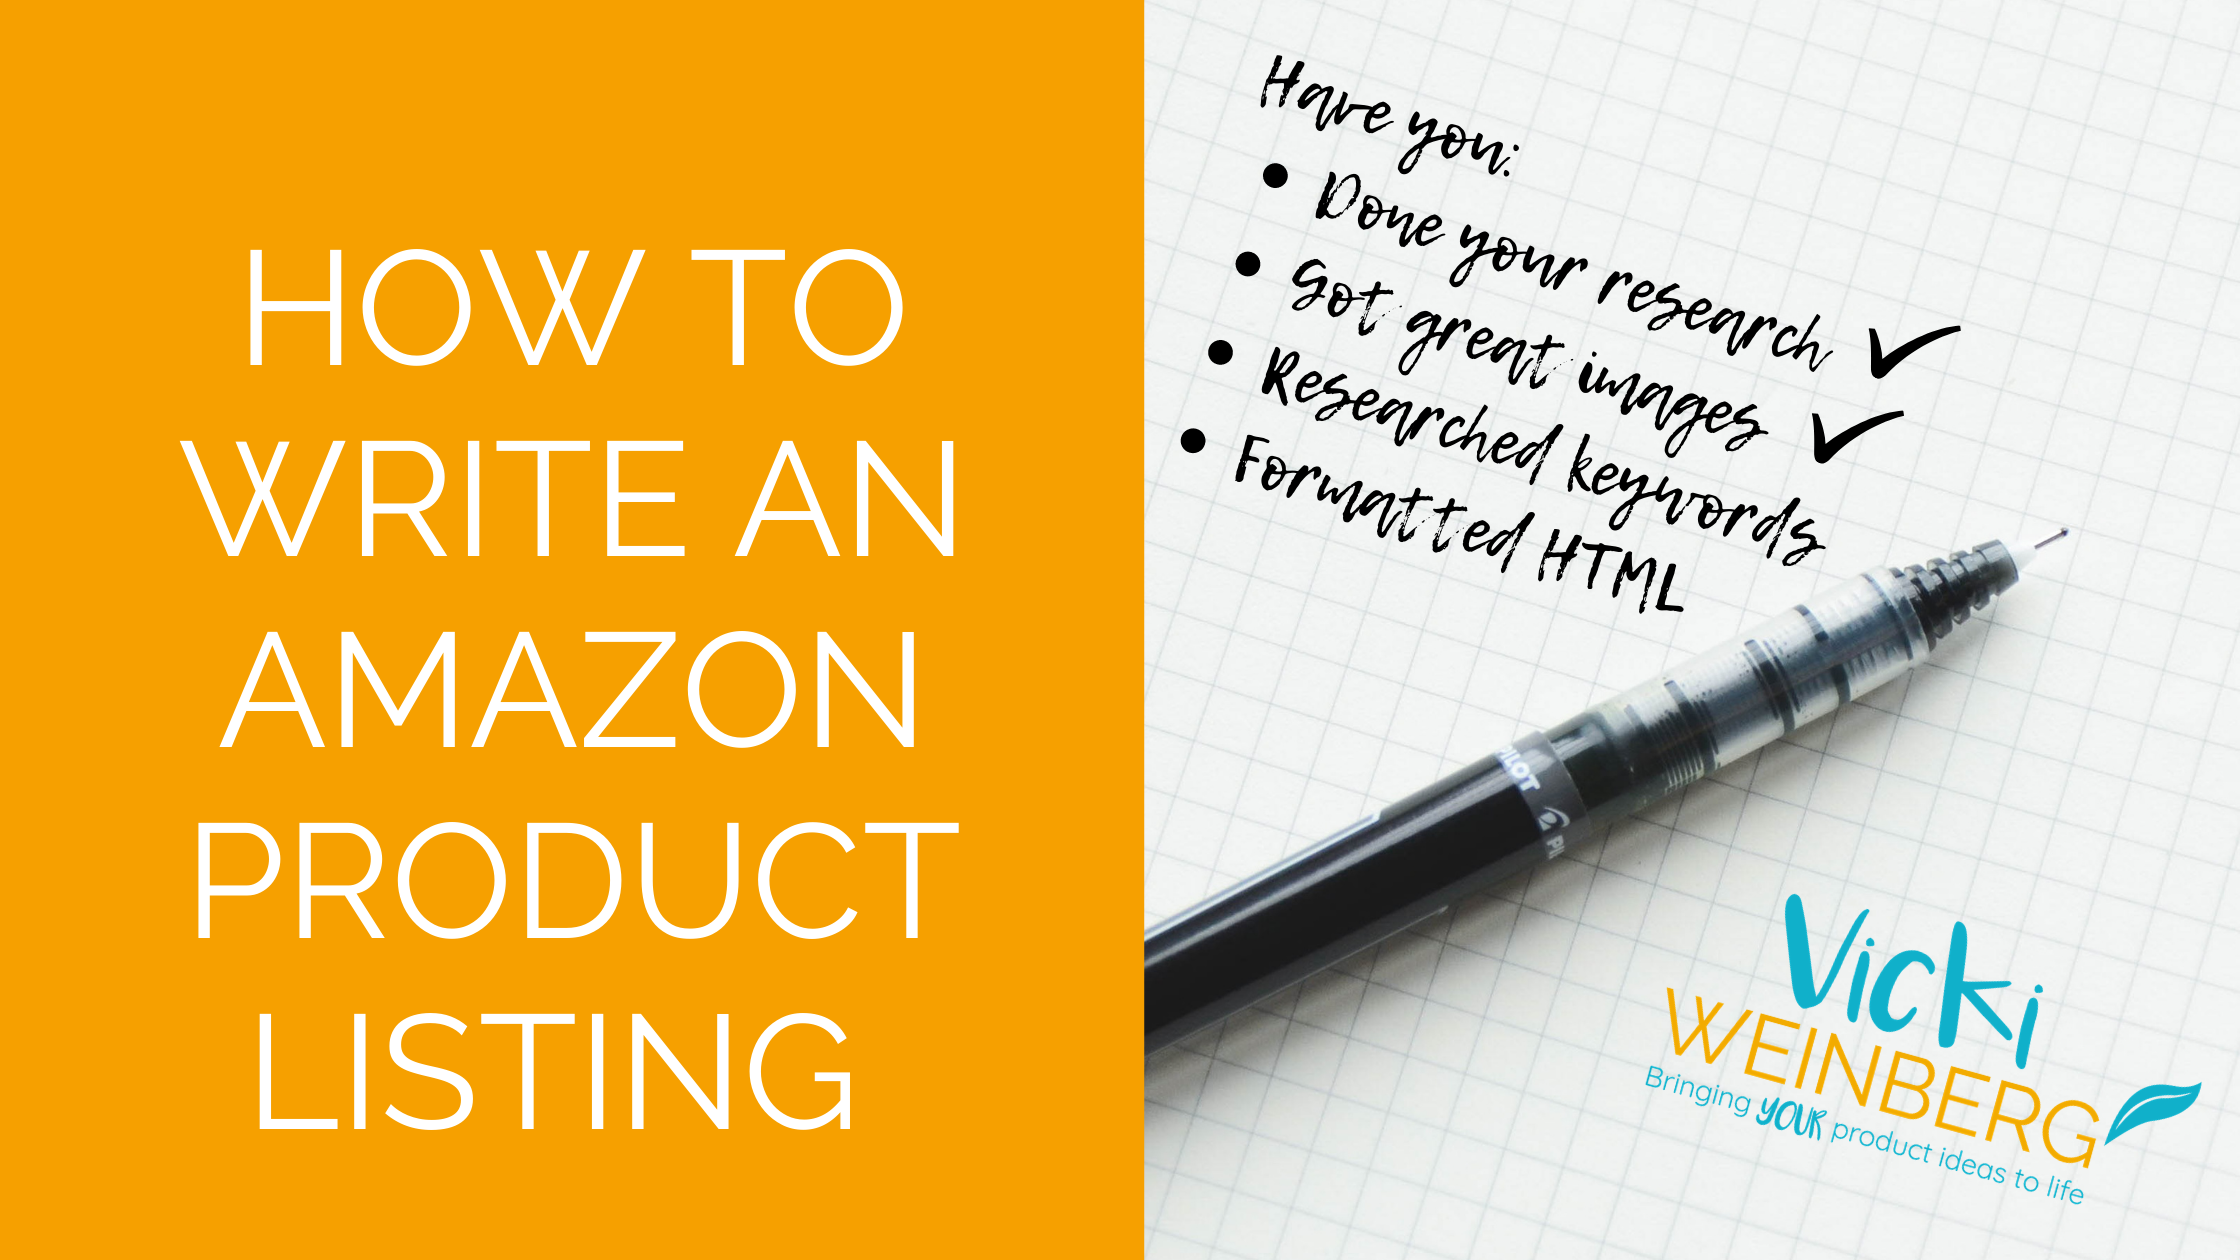 How to write an Amazon product listing